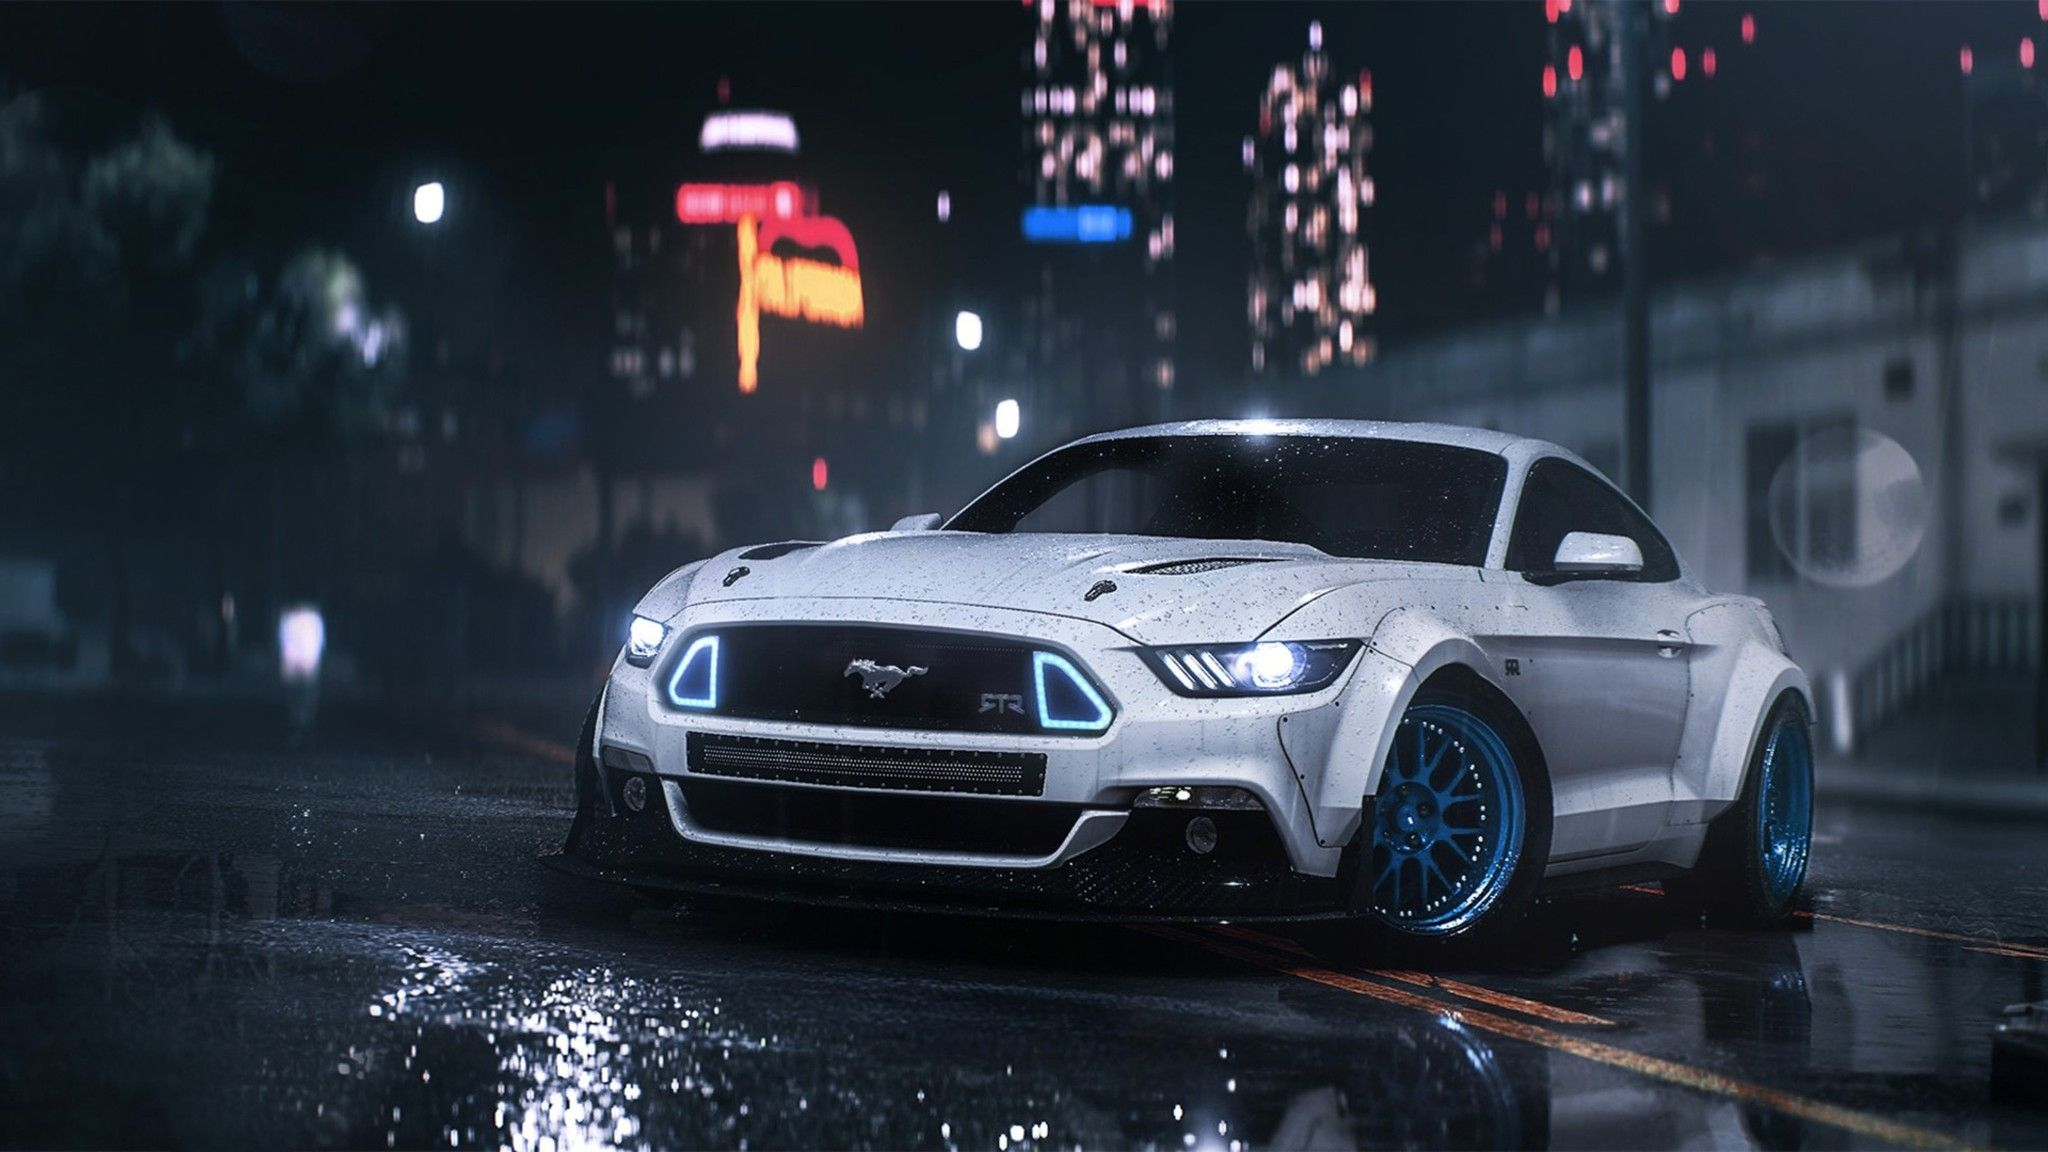 Need For Speed Mustang Hd 2048x1152